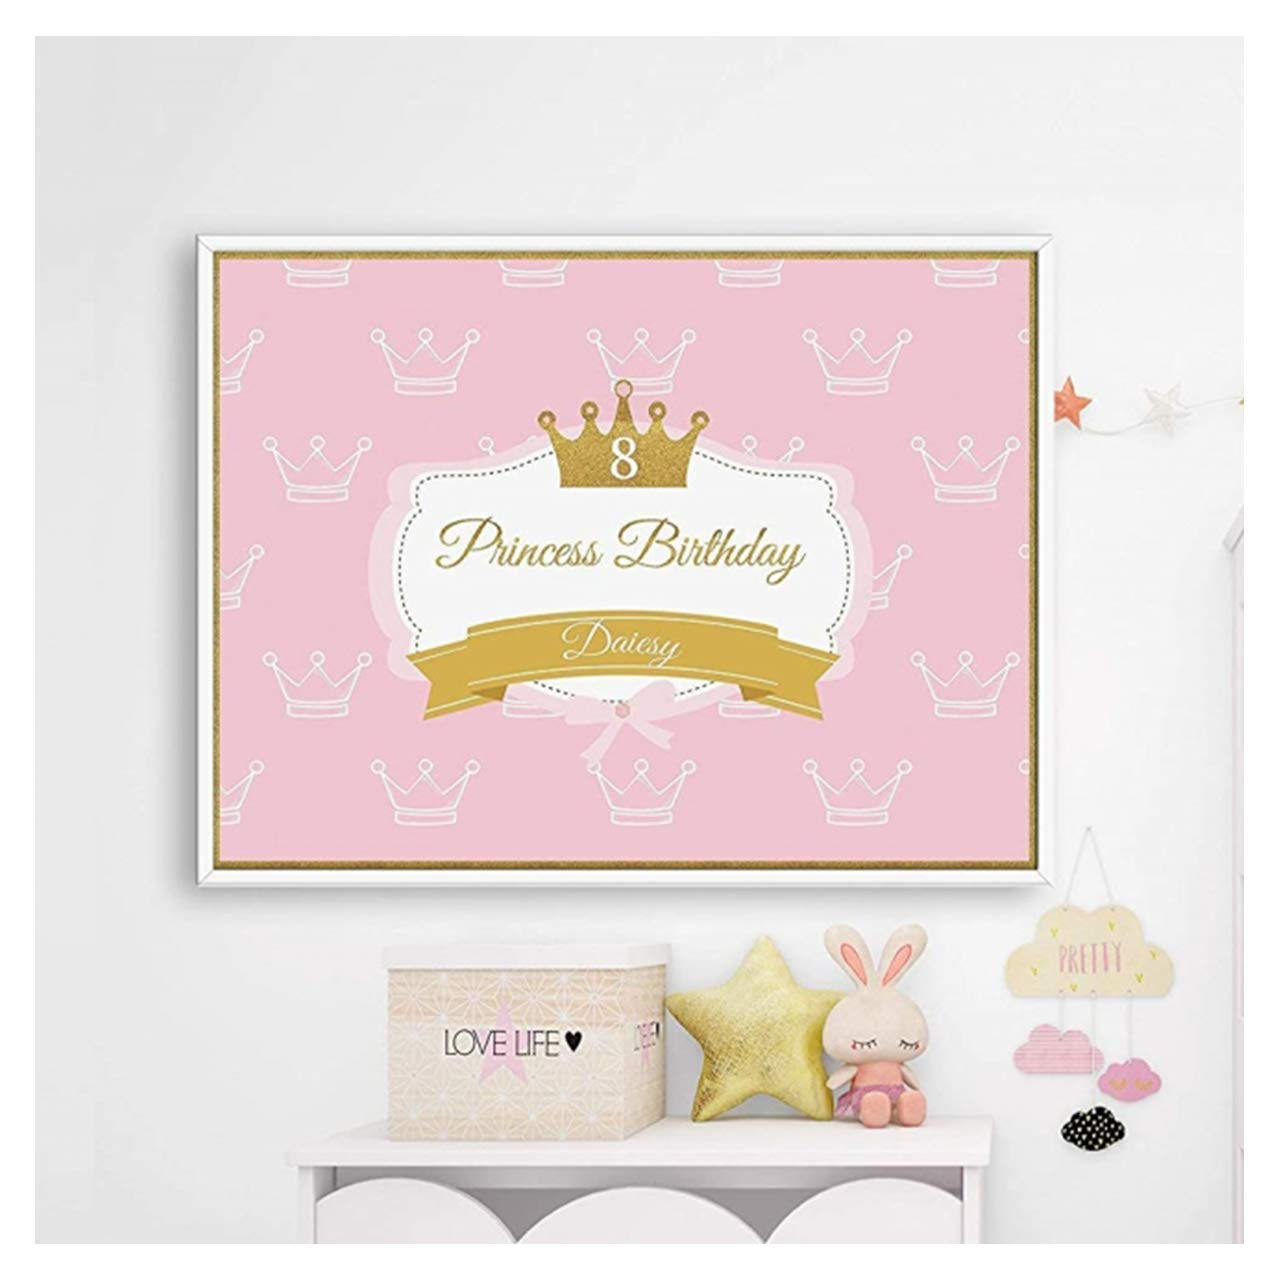 x2 Personalised Birthday Banner Princess Children Party Decoration Poster 30